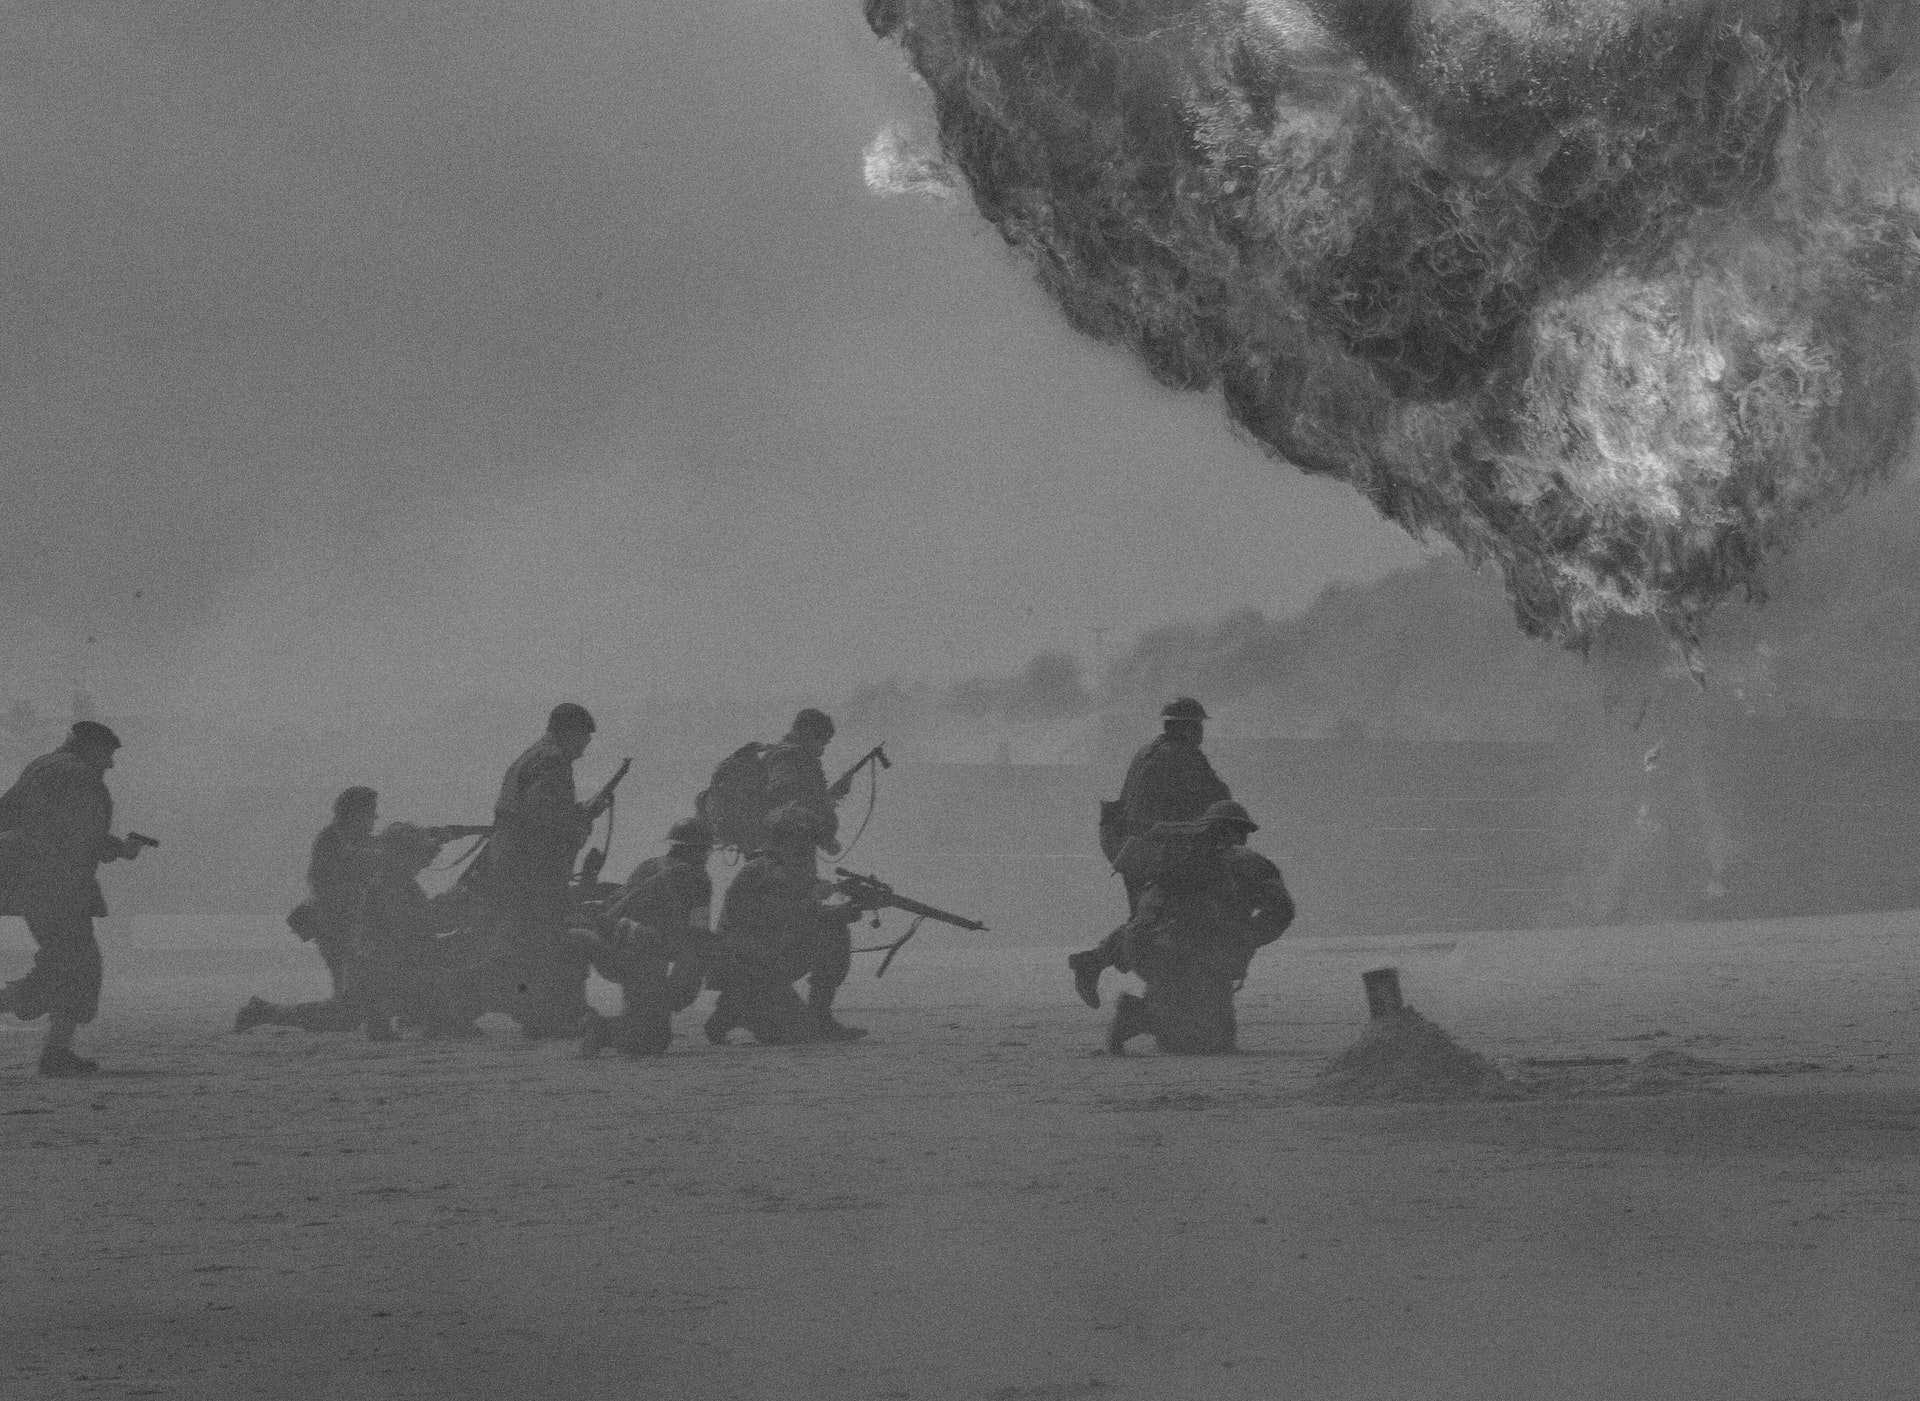 D-Day soldiers